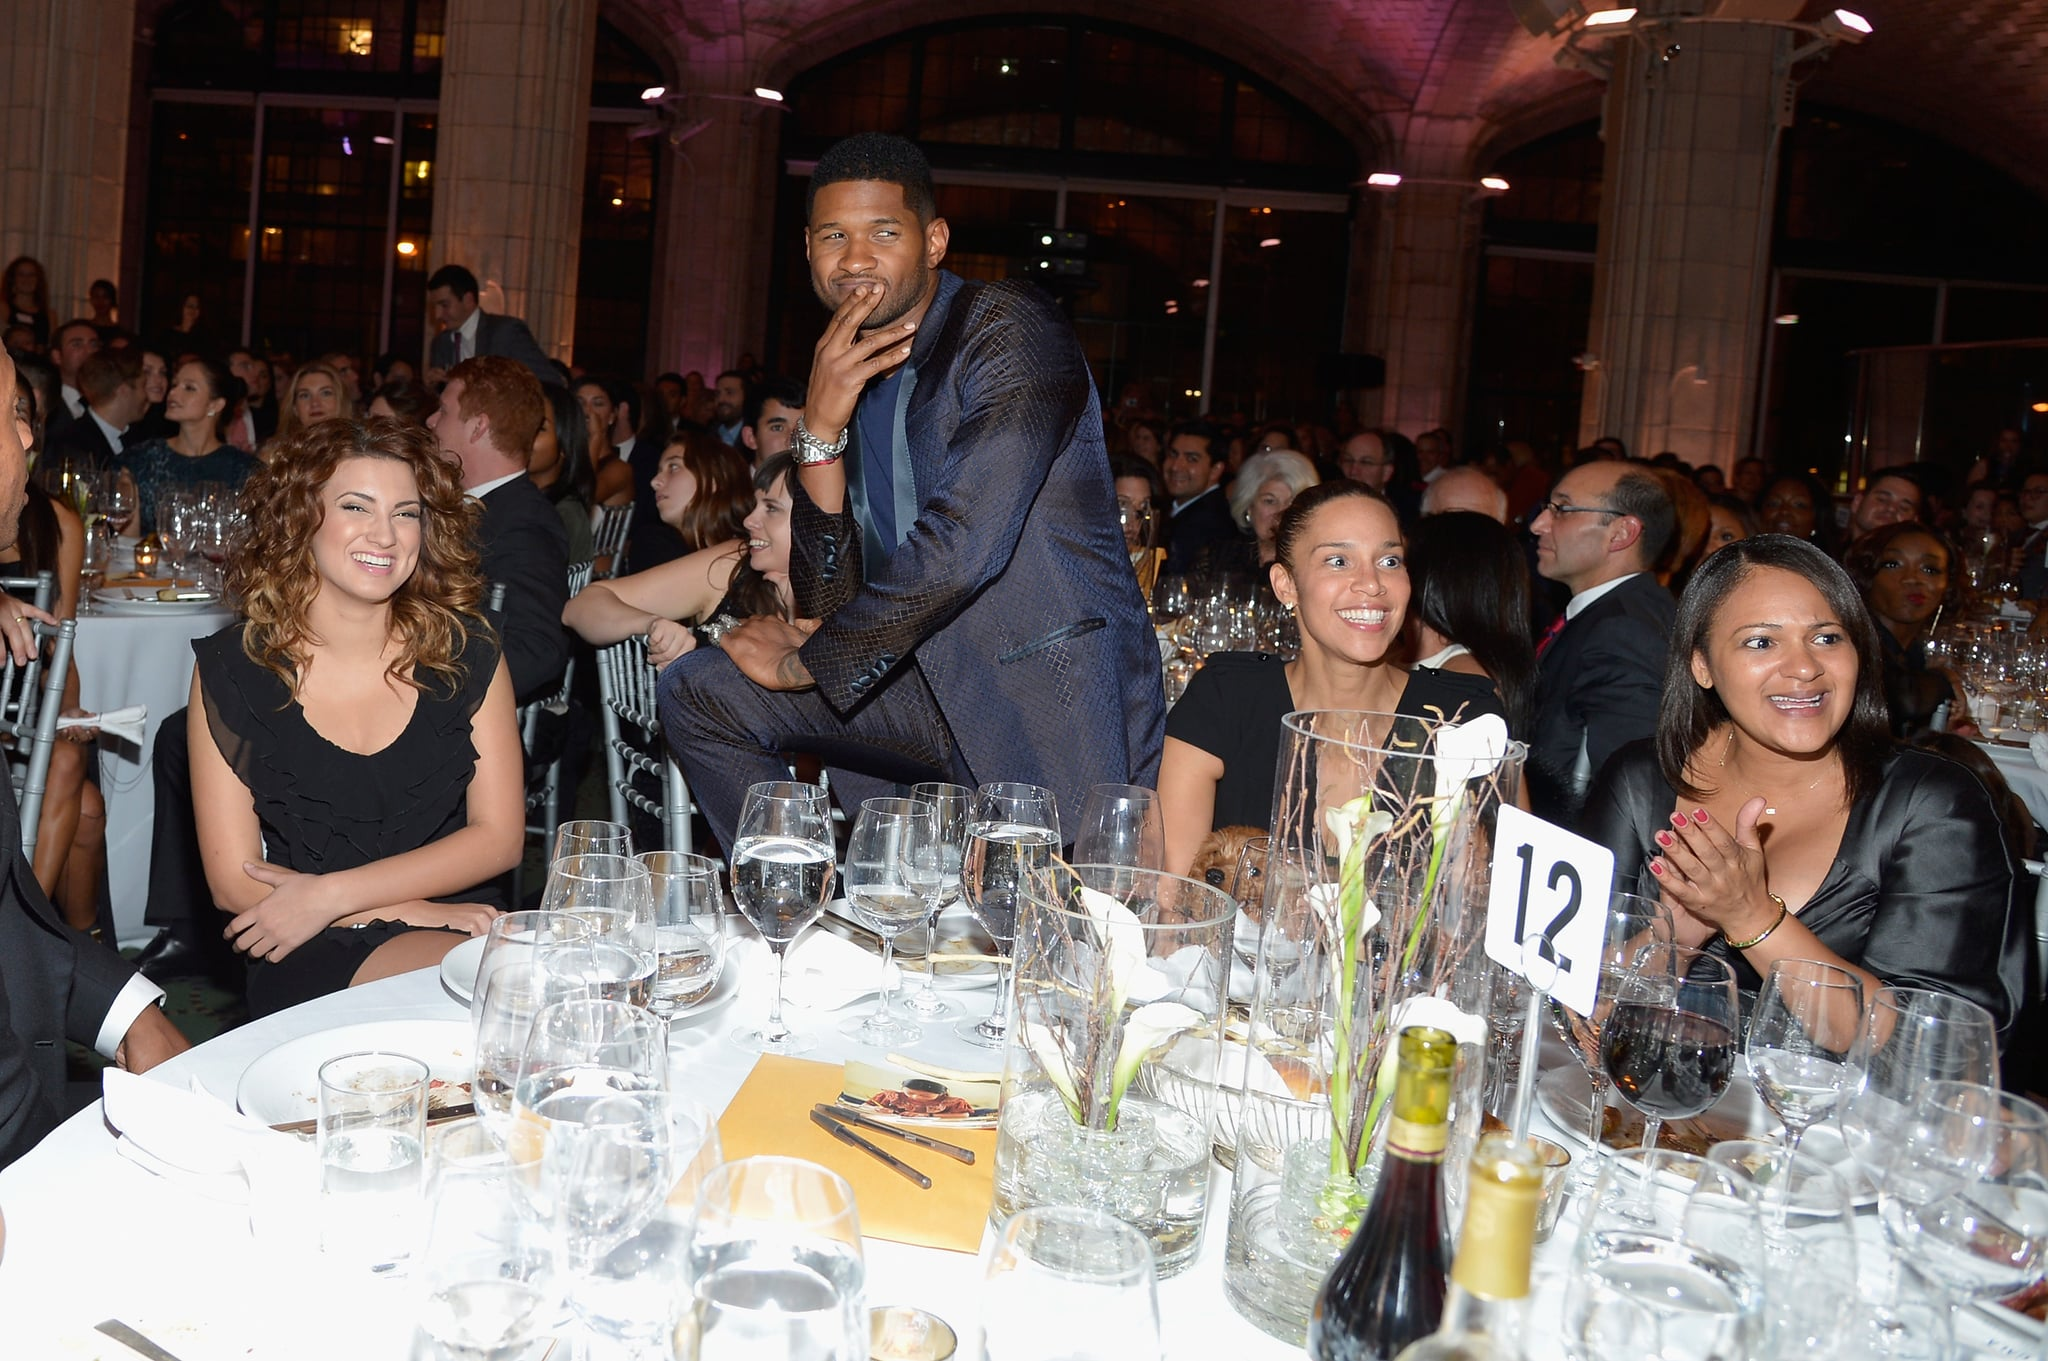 Usher struck a pose in the audience.